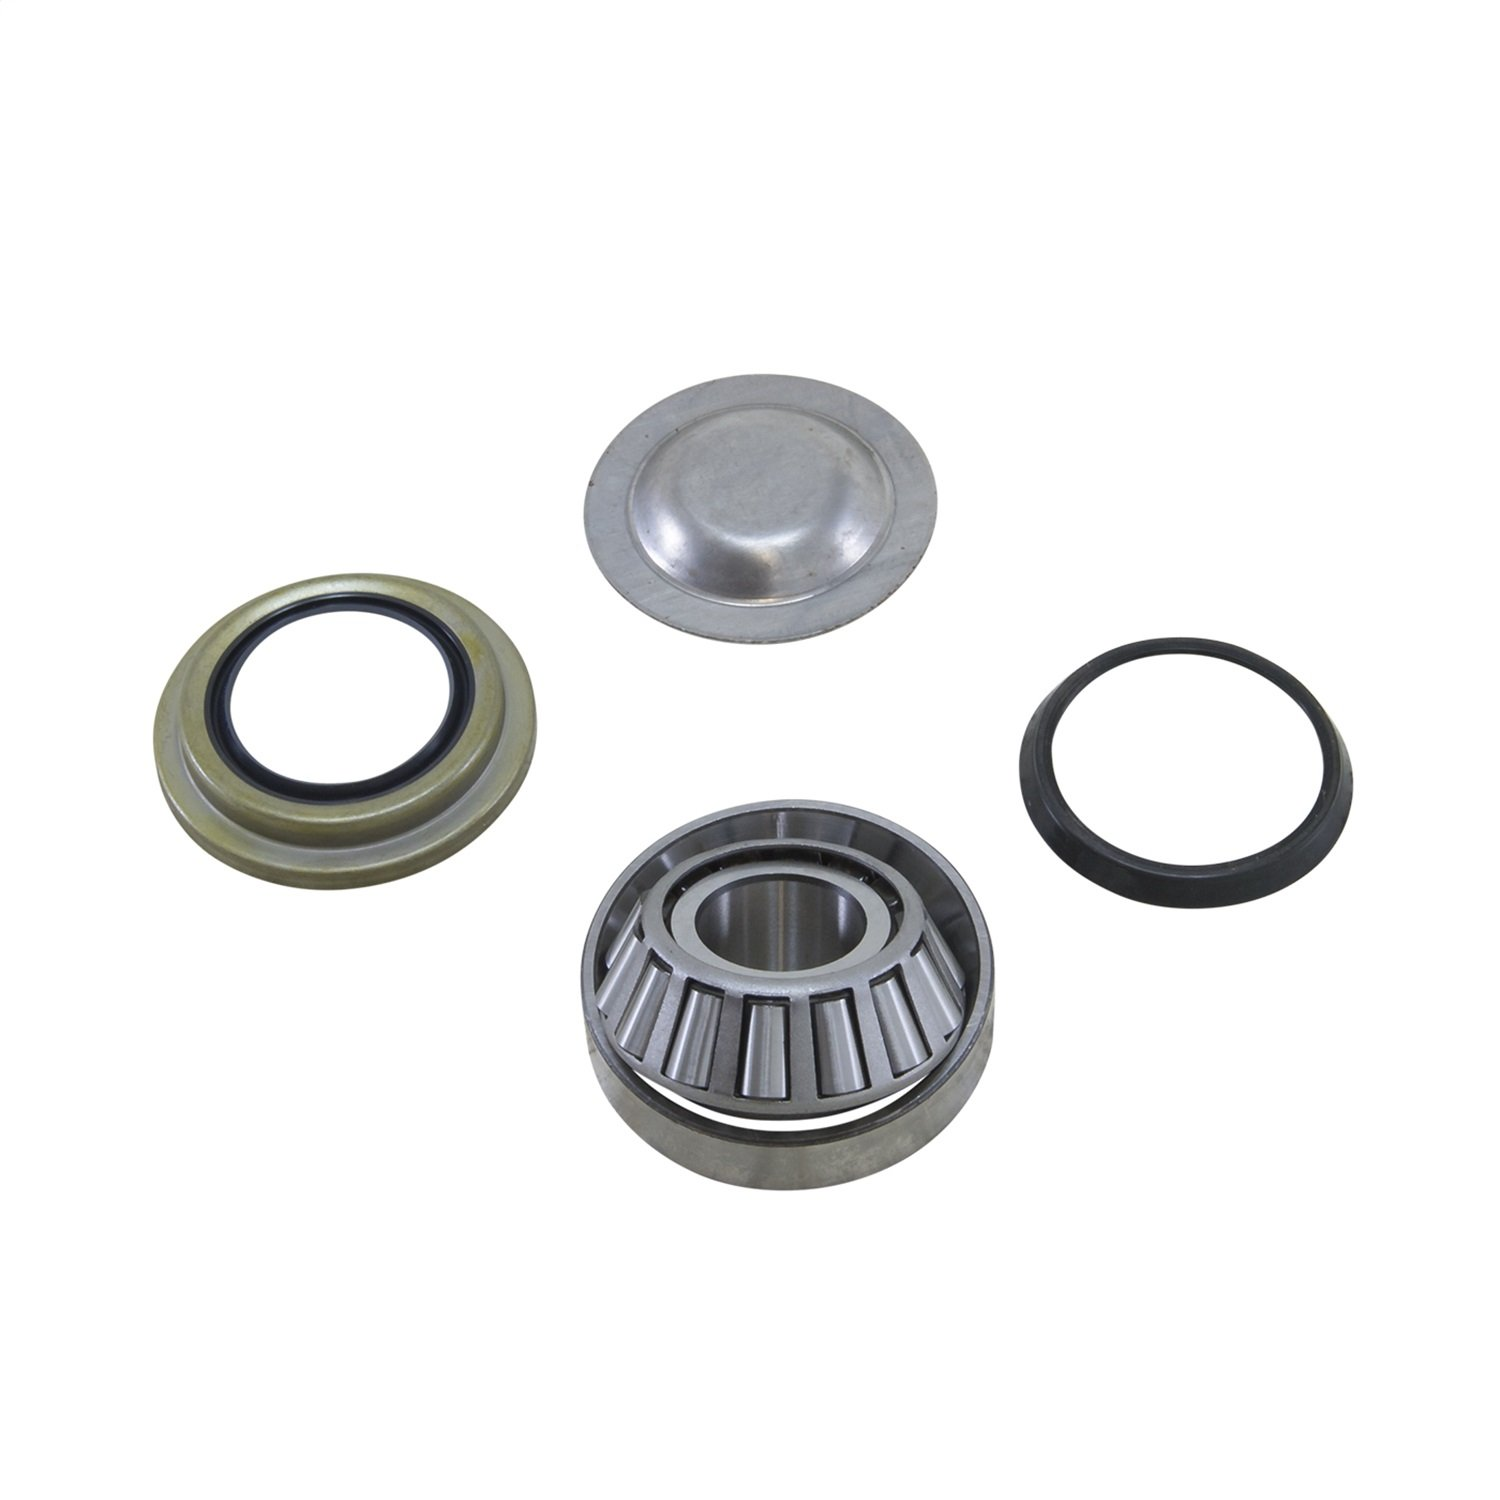 Yukon (YP KP-002) Replacement Partial King-Pin Kit for Dana 60 Differential Yukon Gear